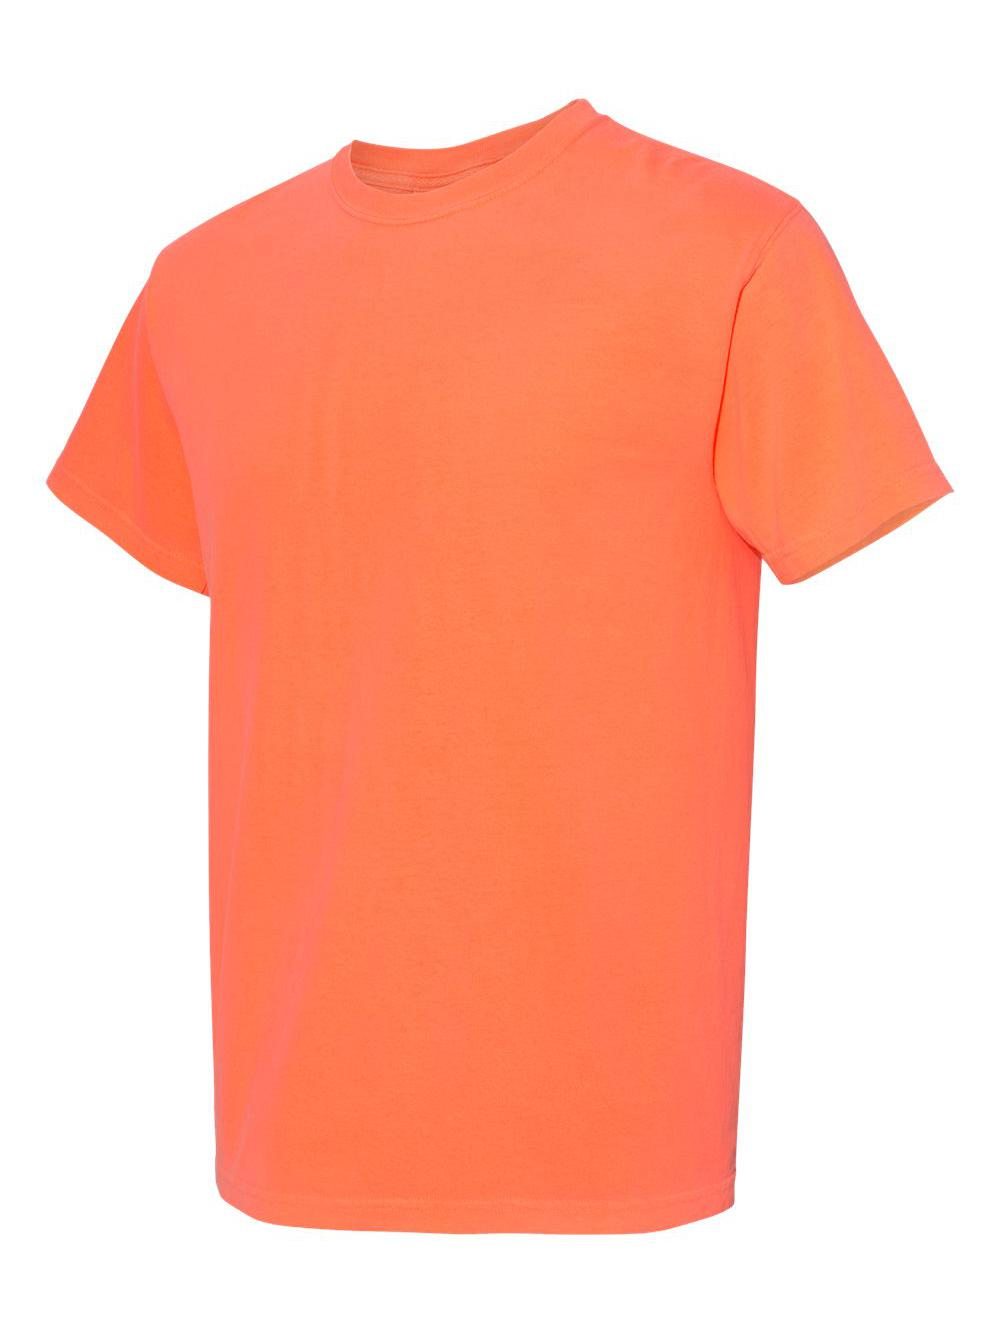 Comfort-Colors-Garment-Dyed-Short-Sleeve-T-Shirt-5500 thumbnail 20